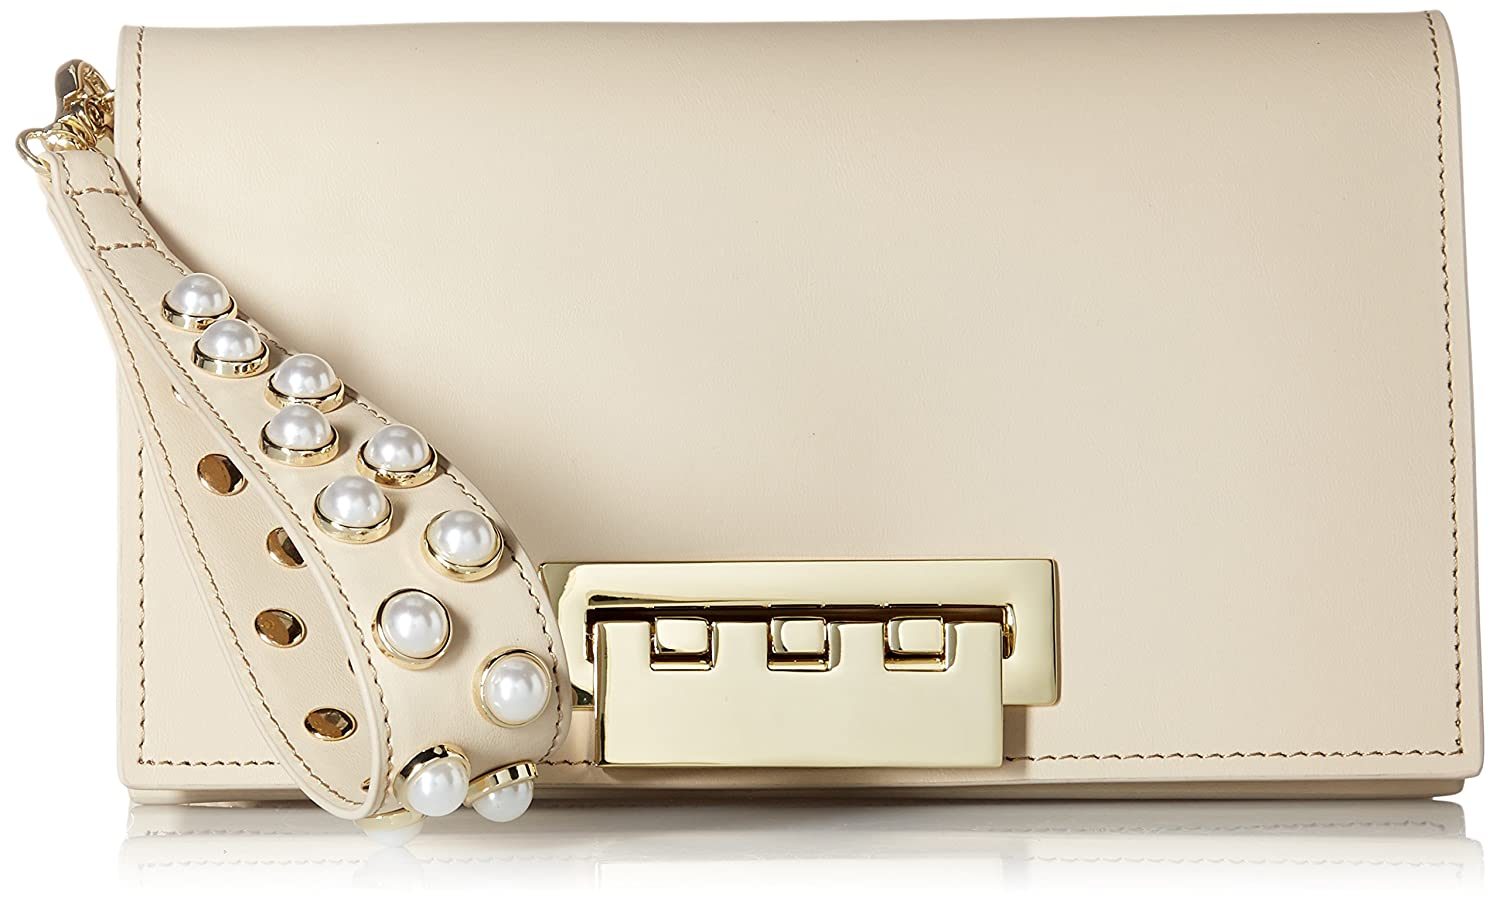 ZAC Zac Posen Earthette Clutch-Sand Dollar with Pearls ZP5137-101